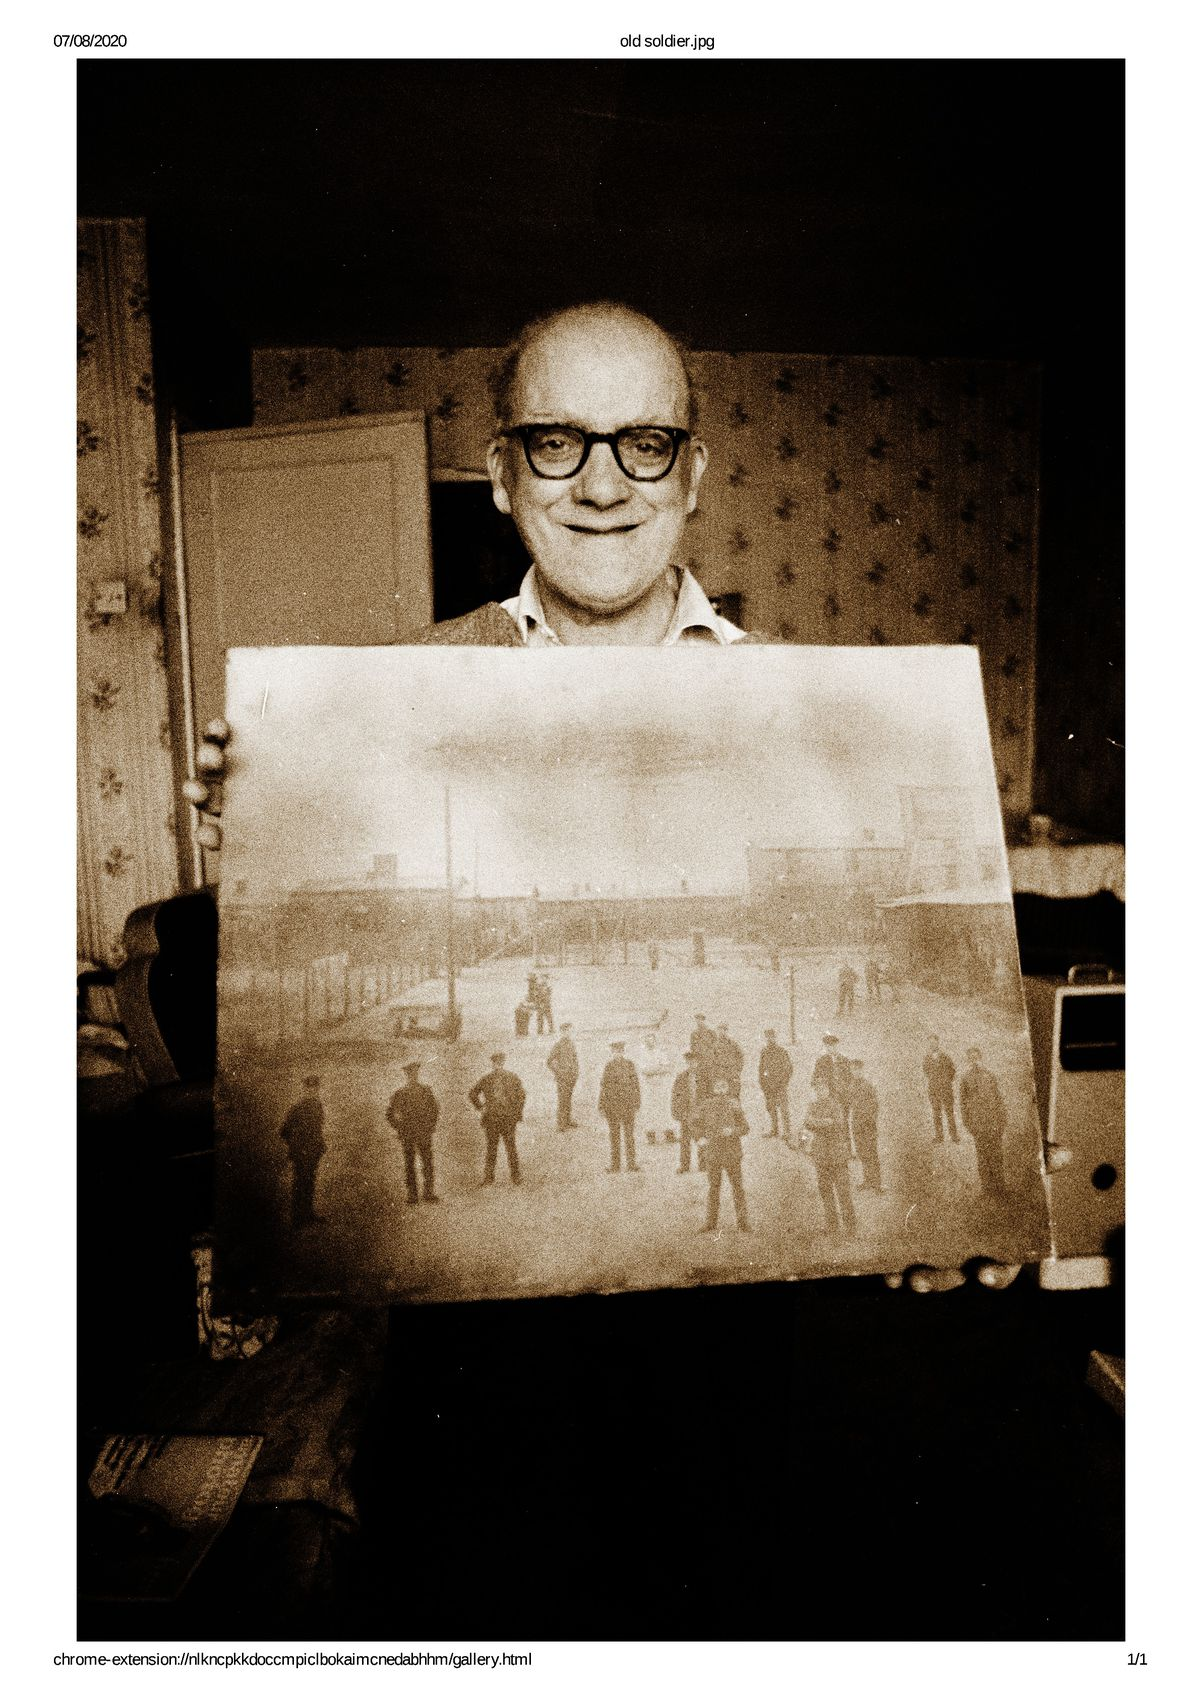 Joanne's great uncle Joseph with a picture of his former regiment